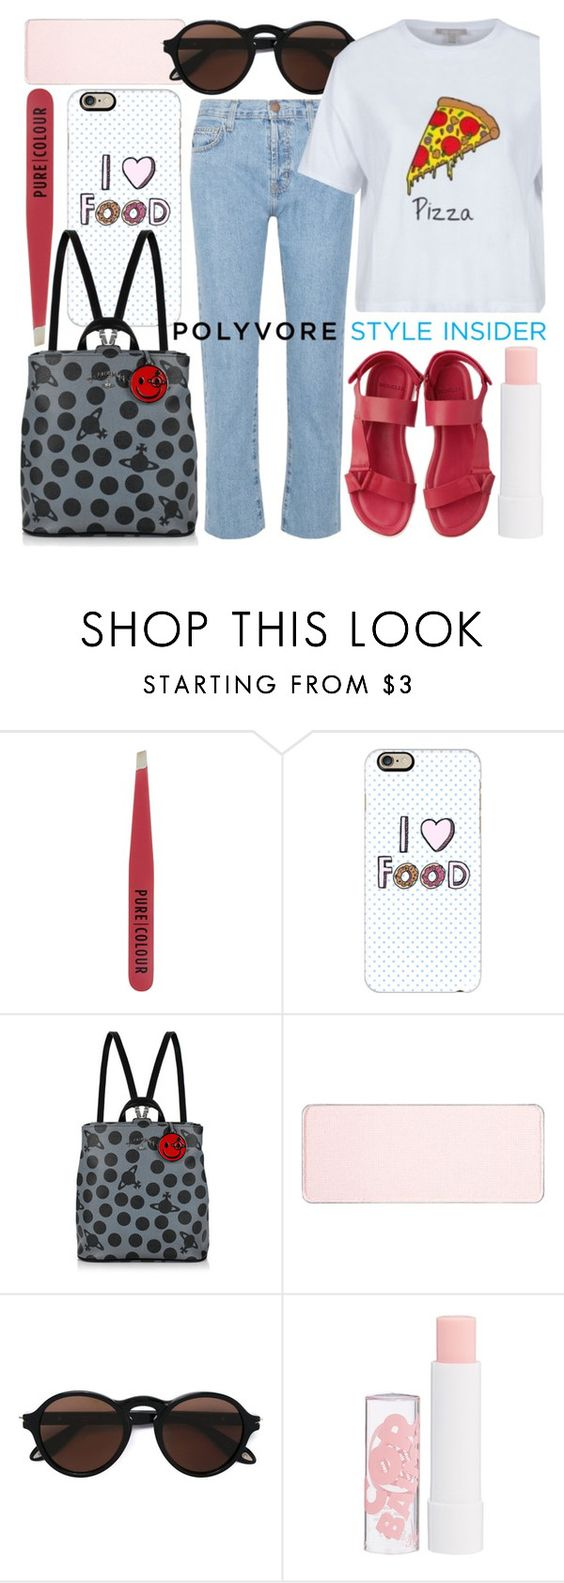 """pizzaholic"" by foundlostme ❤ liked on Polyvore featuring New Look, Casetify, Vivienne Westwood, shu uemura, Givenchy, Barry M, Current/Elliott, backpacks, contestentry and PVStyleInsiderContest"